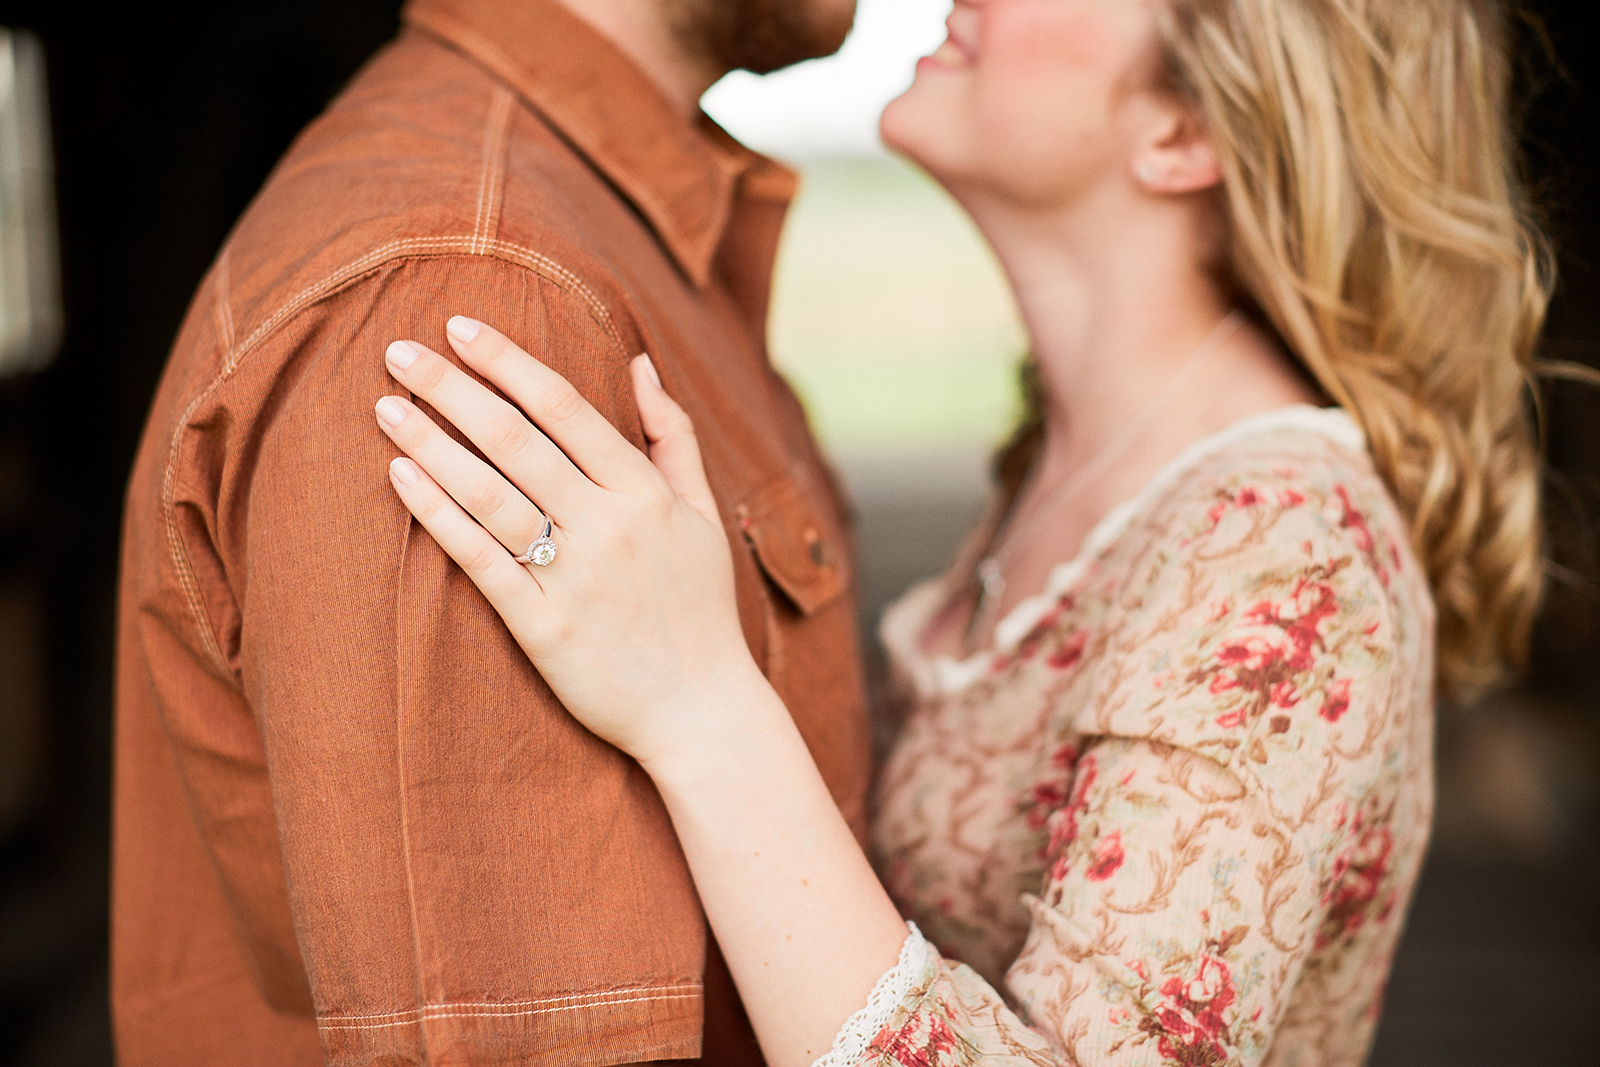 Daniel Boone Home Engagement Session in St Charles County by Oldani Photography St. Louis Wedding Photographers6.jpg